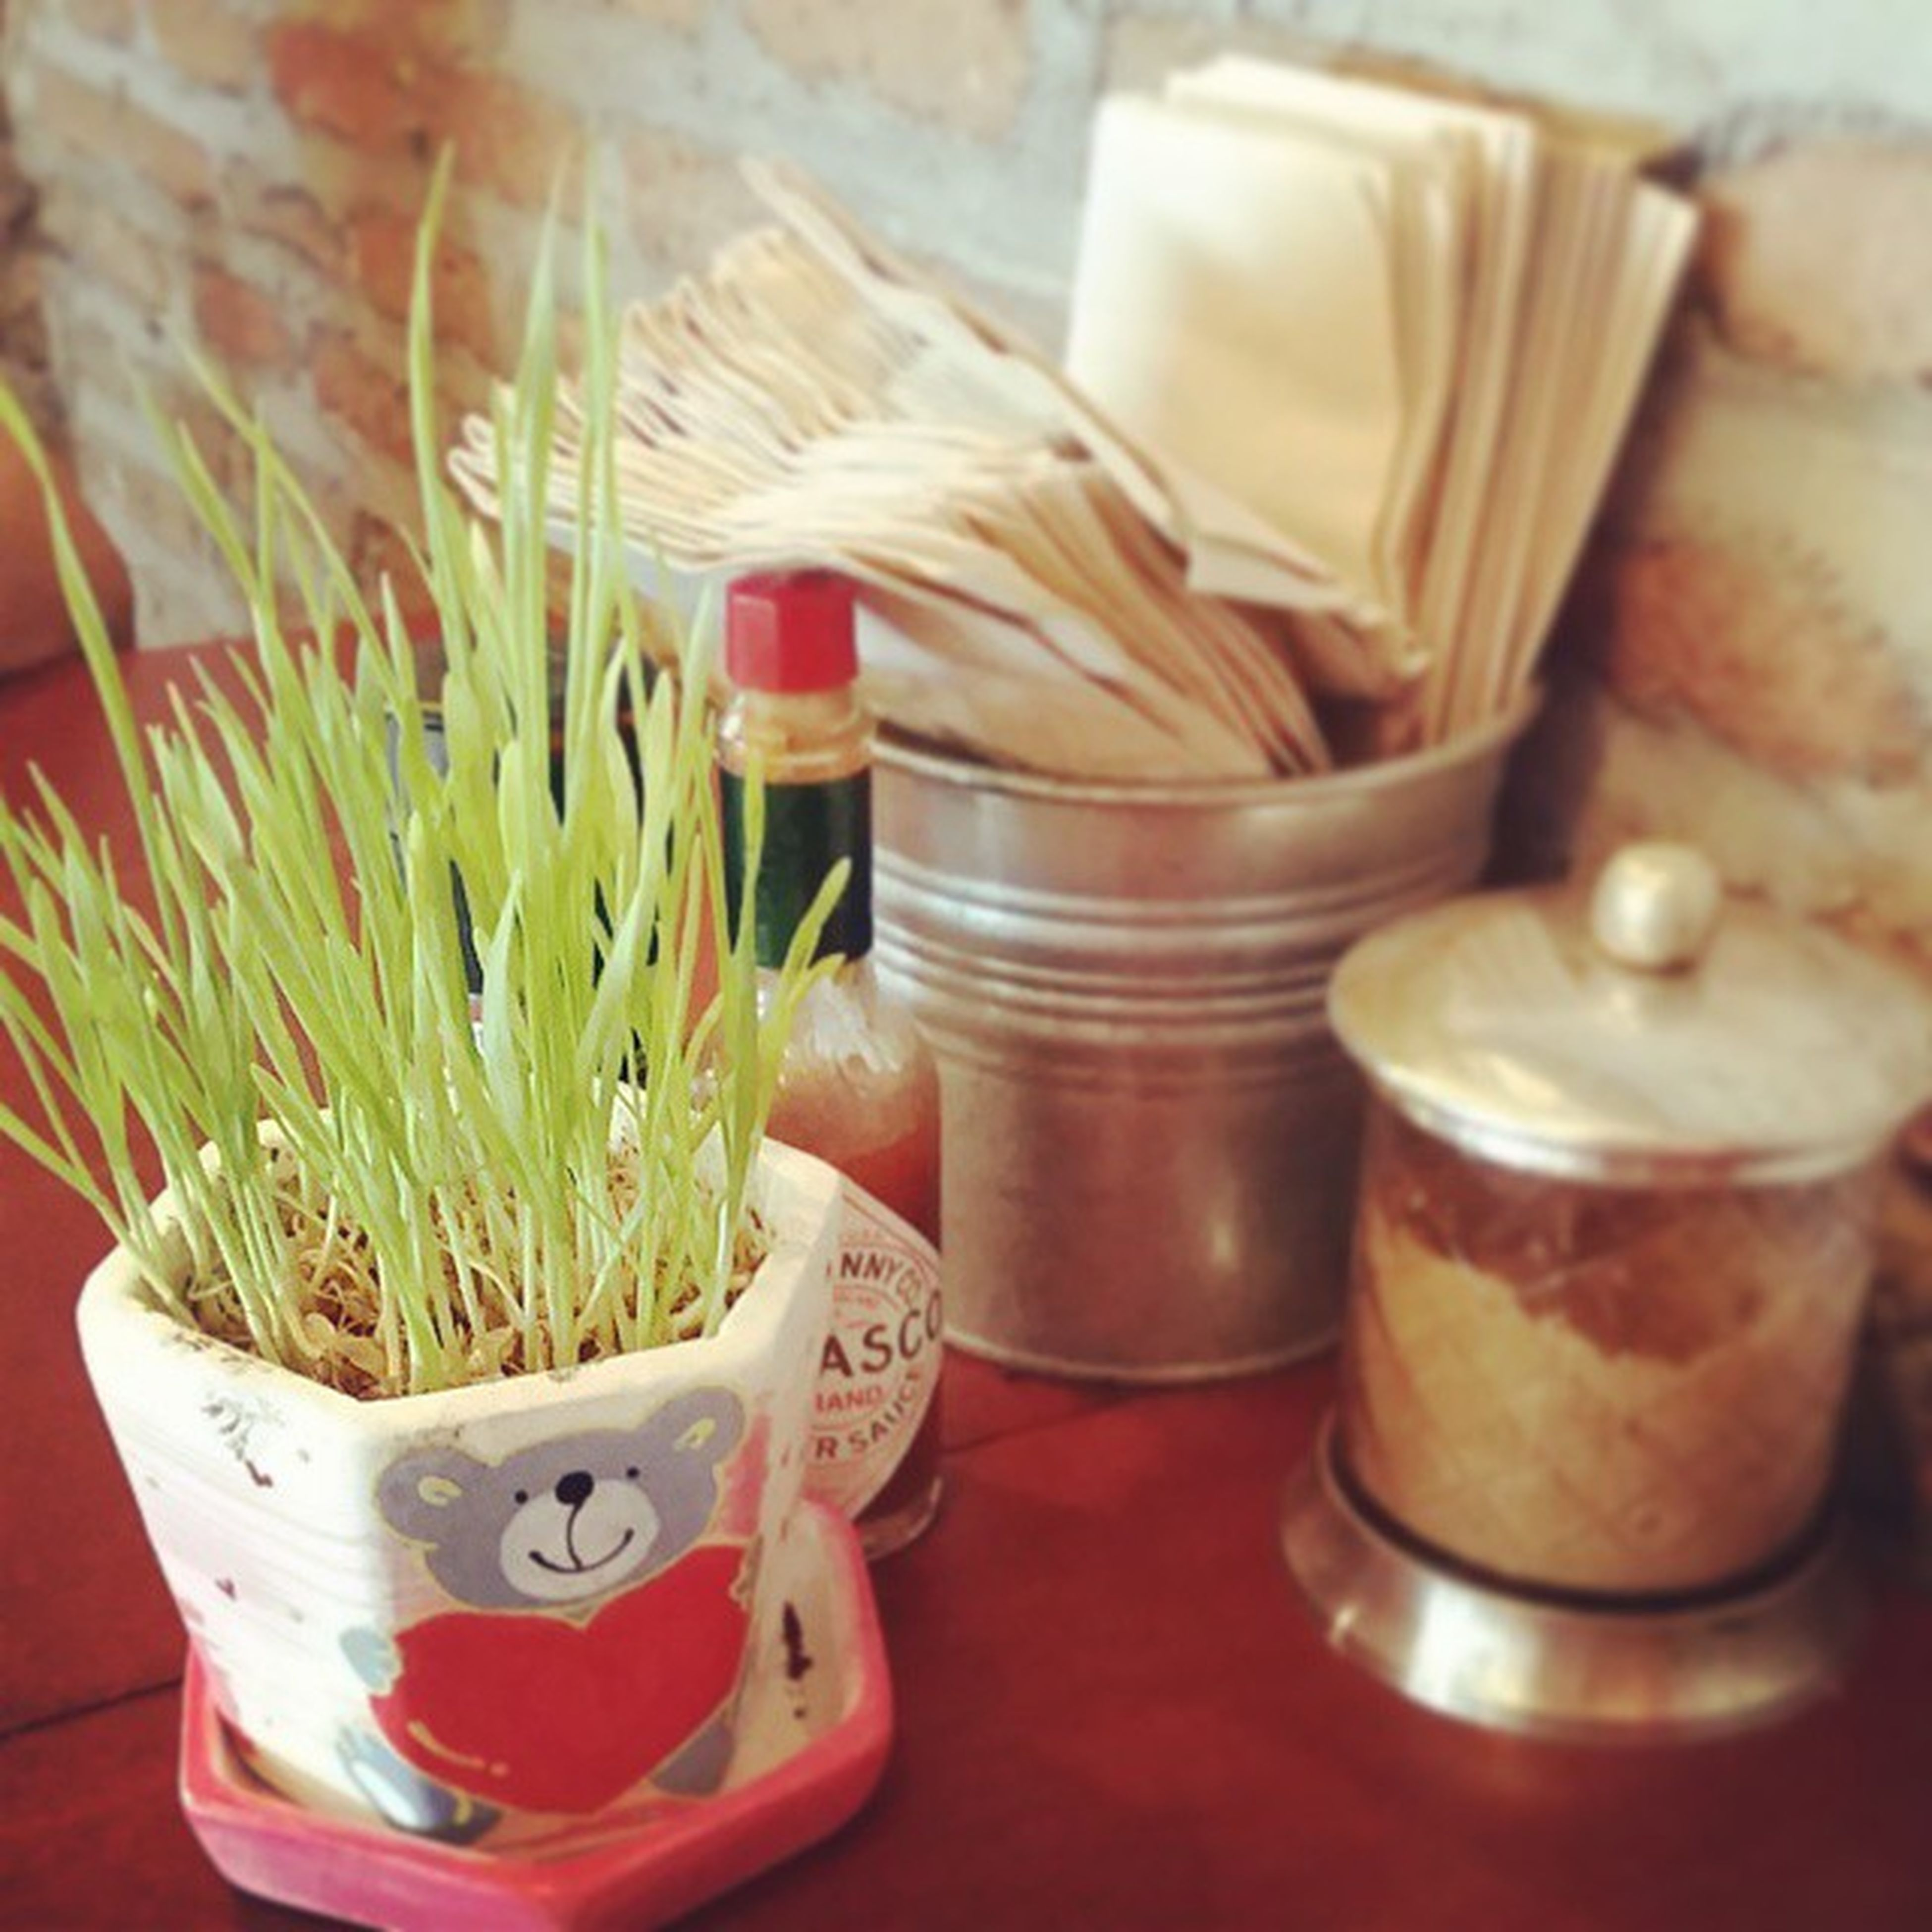 indoors, table, potted plant, still life, plant, container, close-up, no people, freshness, high angle view, growth, bottle, flower, food and drink, day, variation, wood - material, jar, red, arrangement